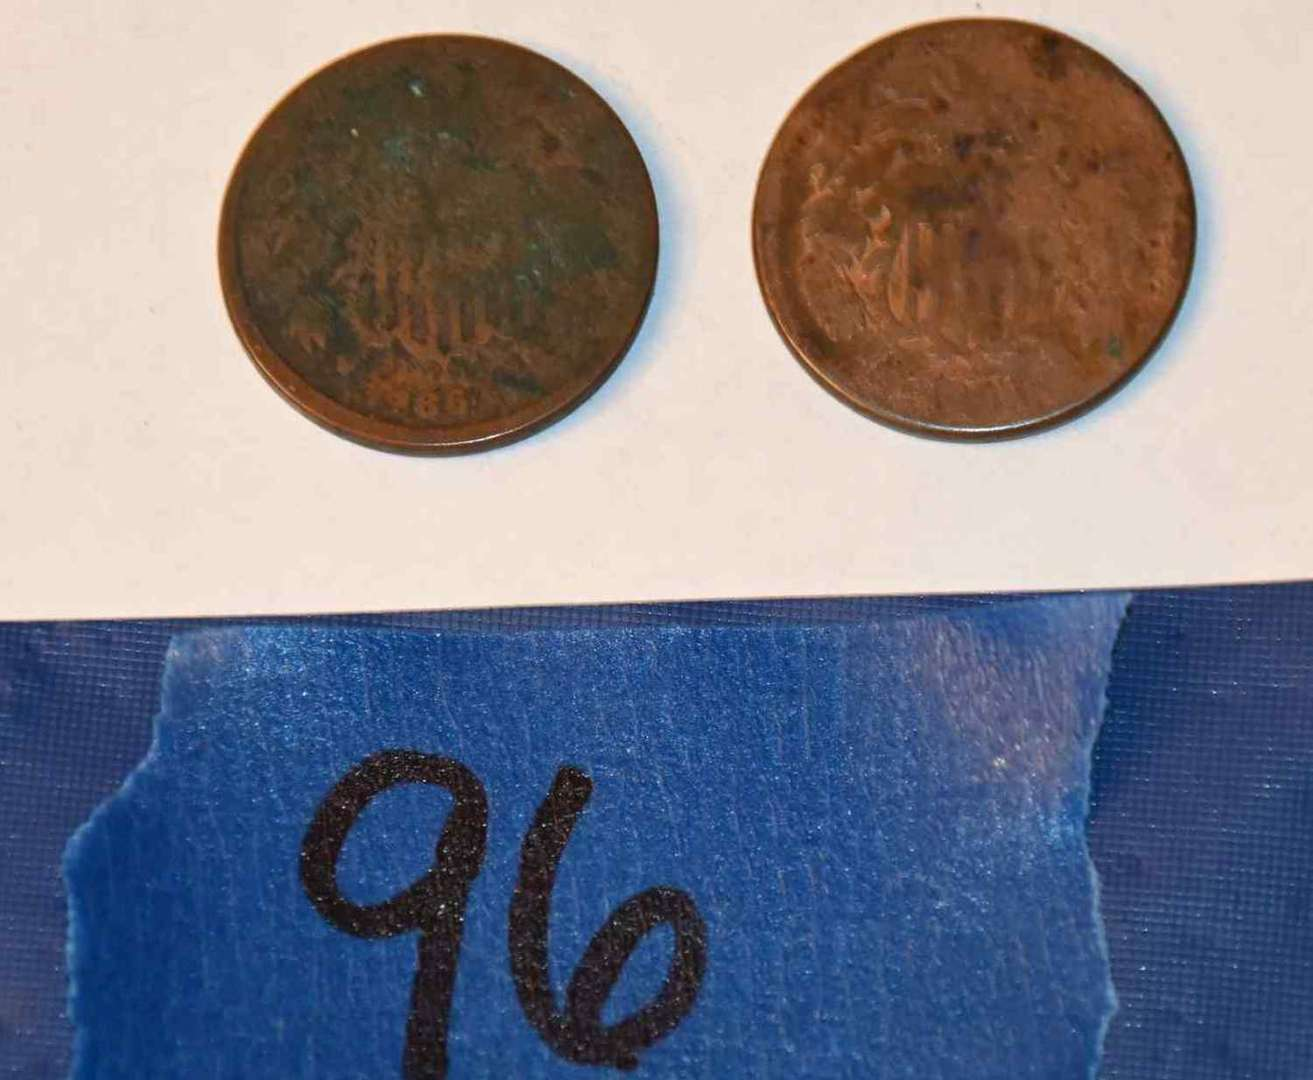 Lot # 96 Two 1864 2 cent coins